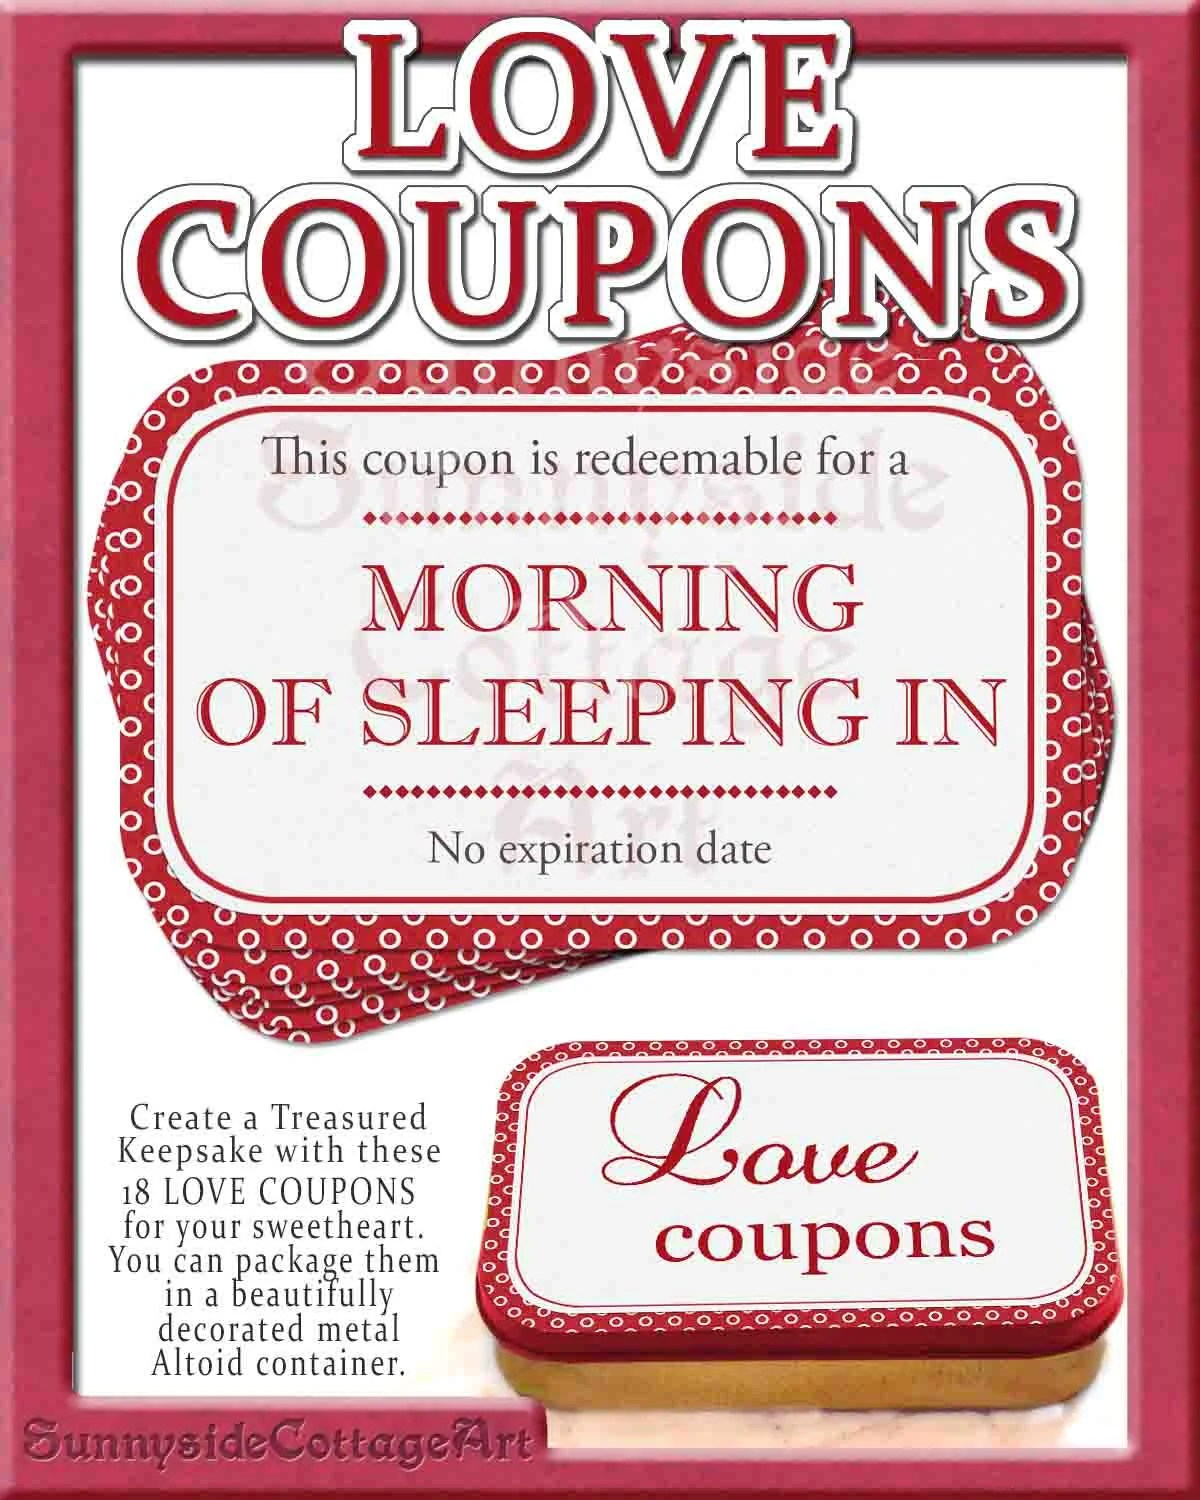 Romantic And Naughty Printable Love Coupons For Him \u2022 Glitter N Spice - homemade coupons for boyfriend ideas